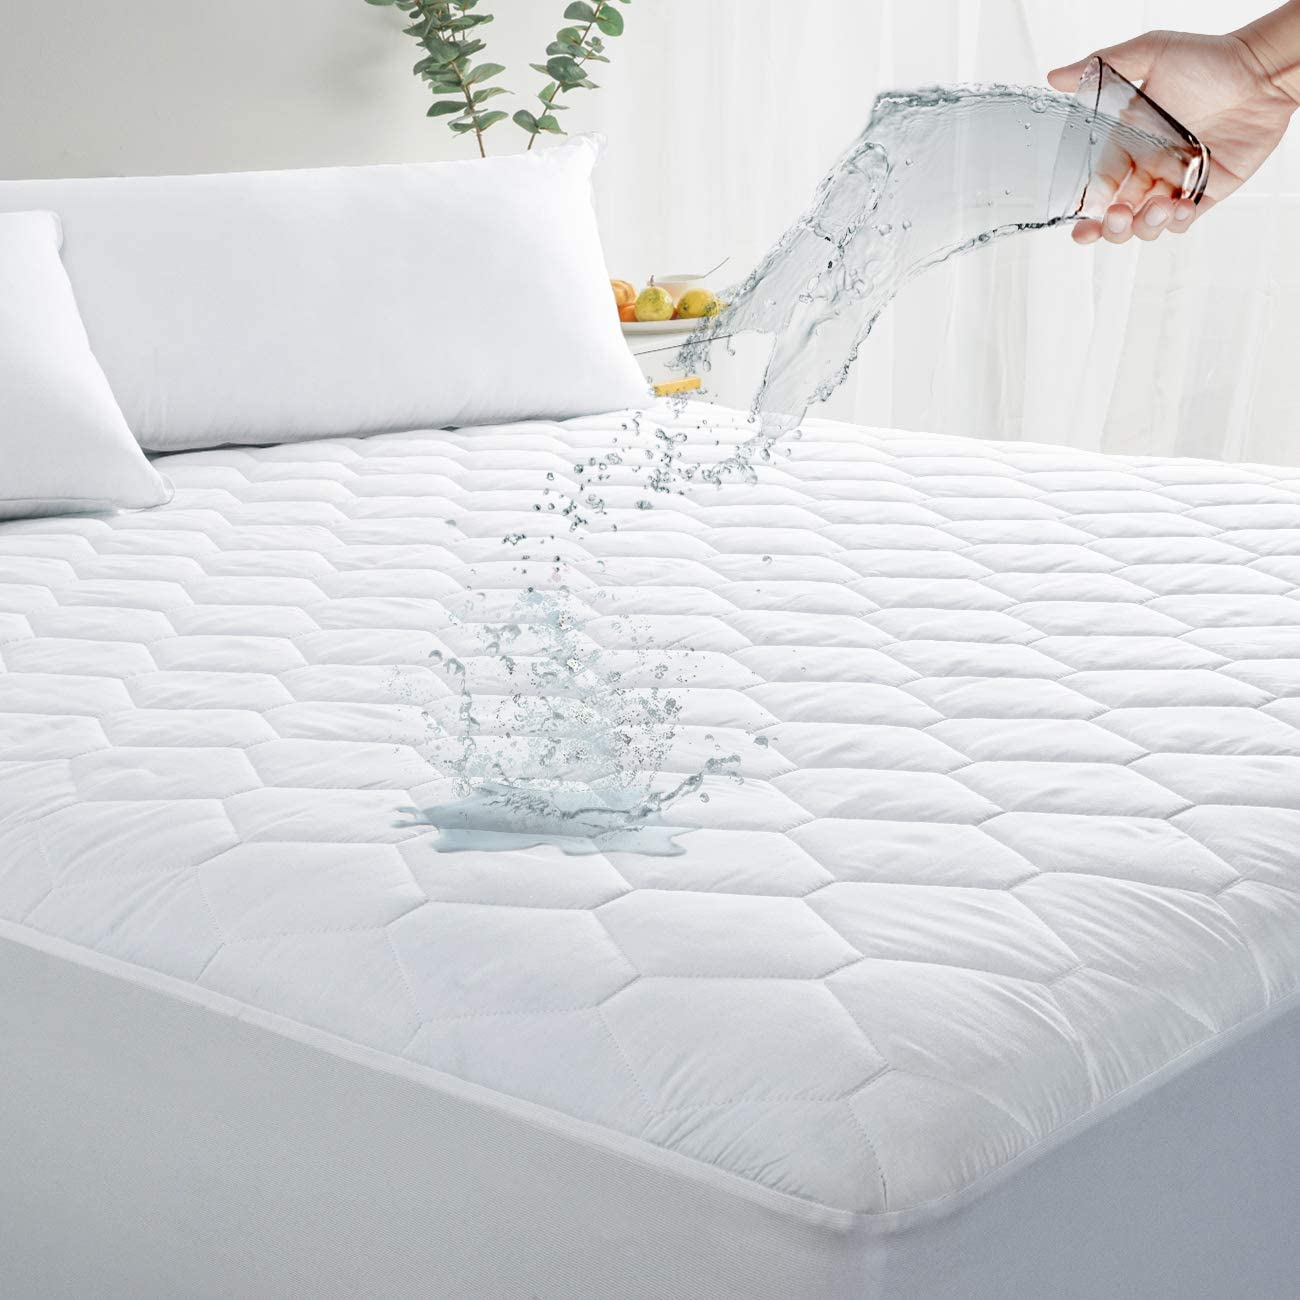 Quilted Mattress Protectors  Mattress cover Waterproof Hypoallergenic